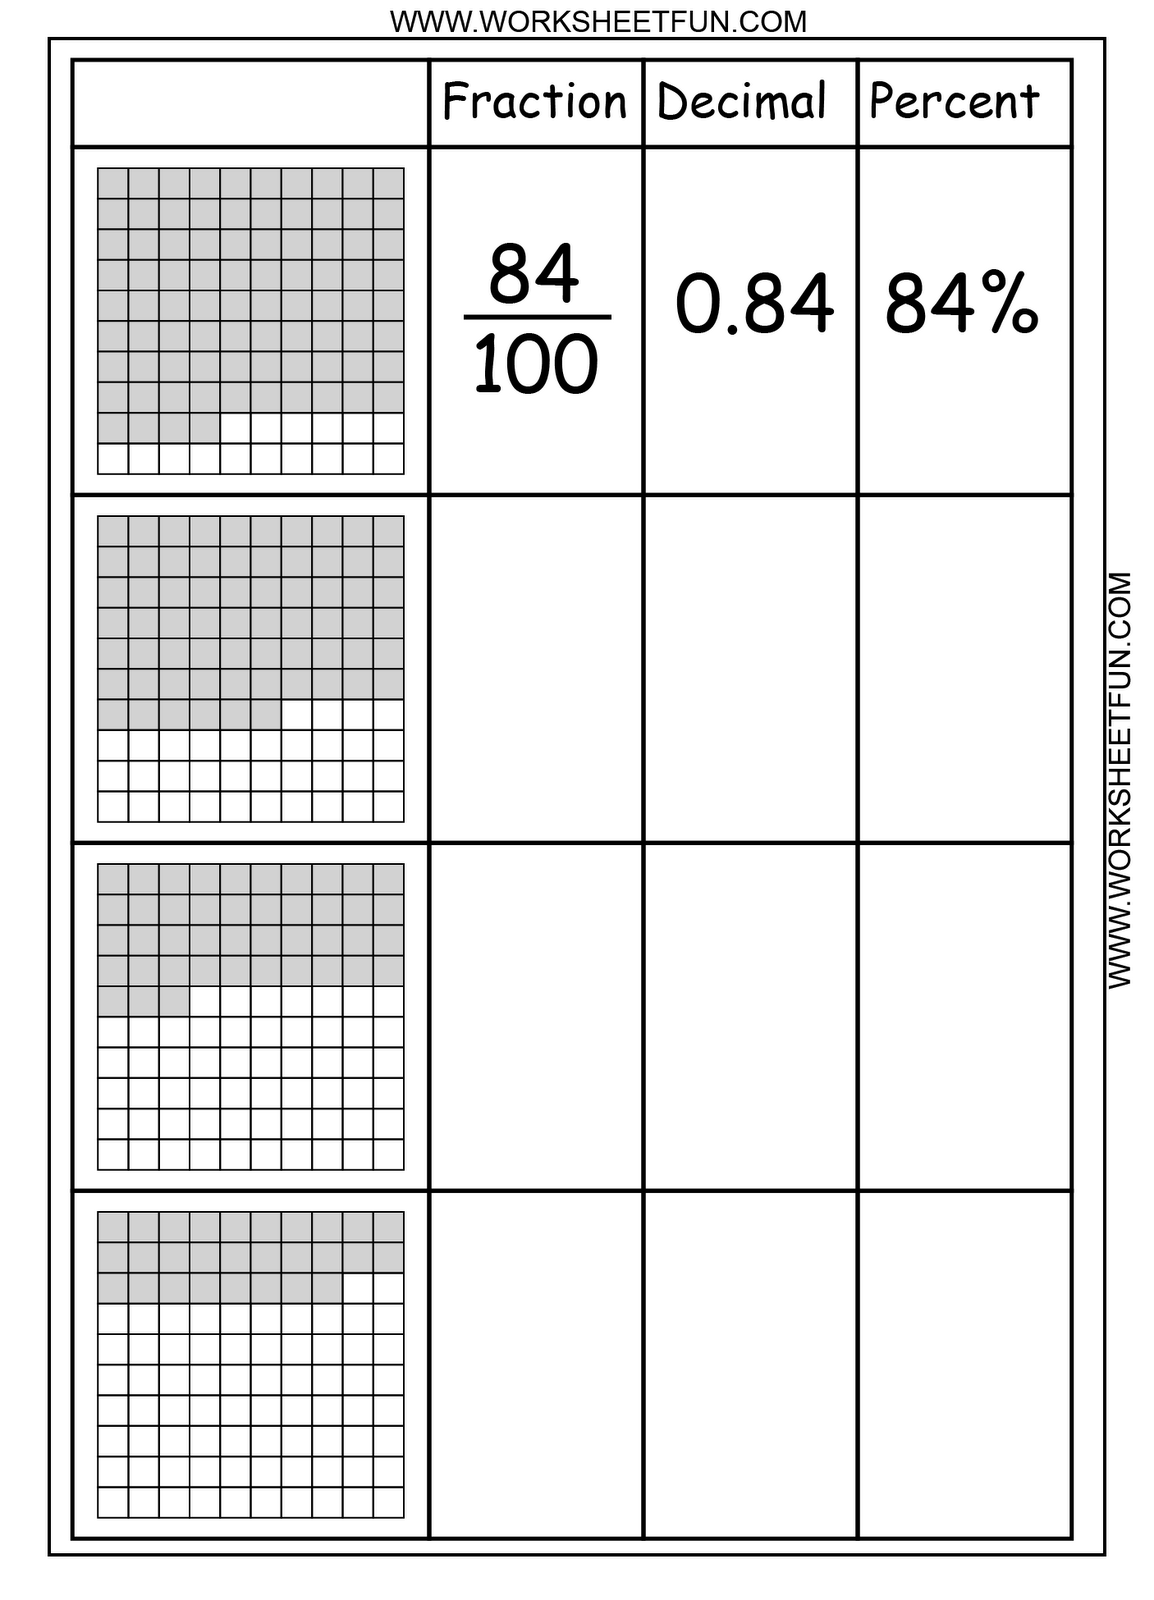 worksheet Decimal Fraction Percent Worksheets heres a site with series of free pages on converting fractions decimals and percents